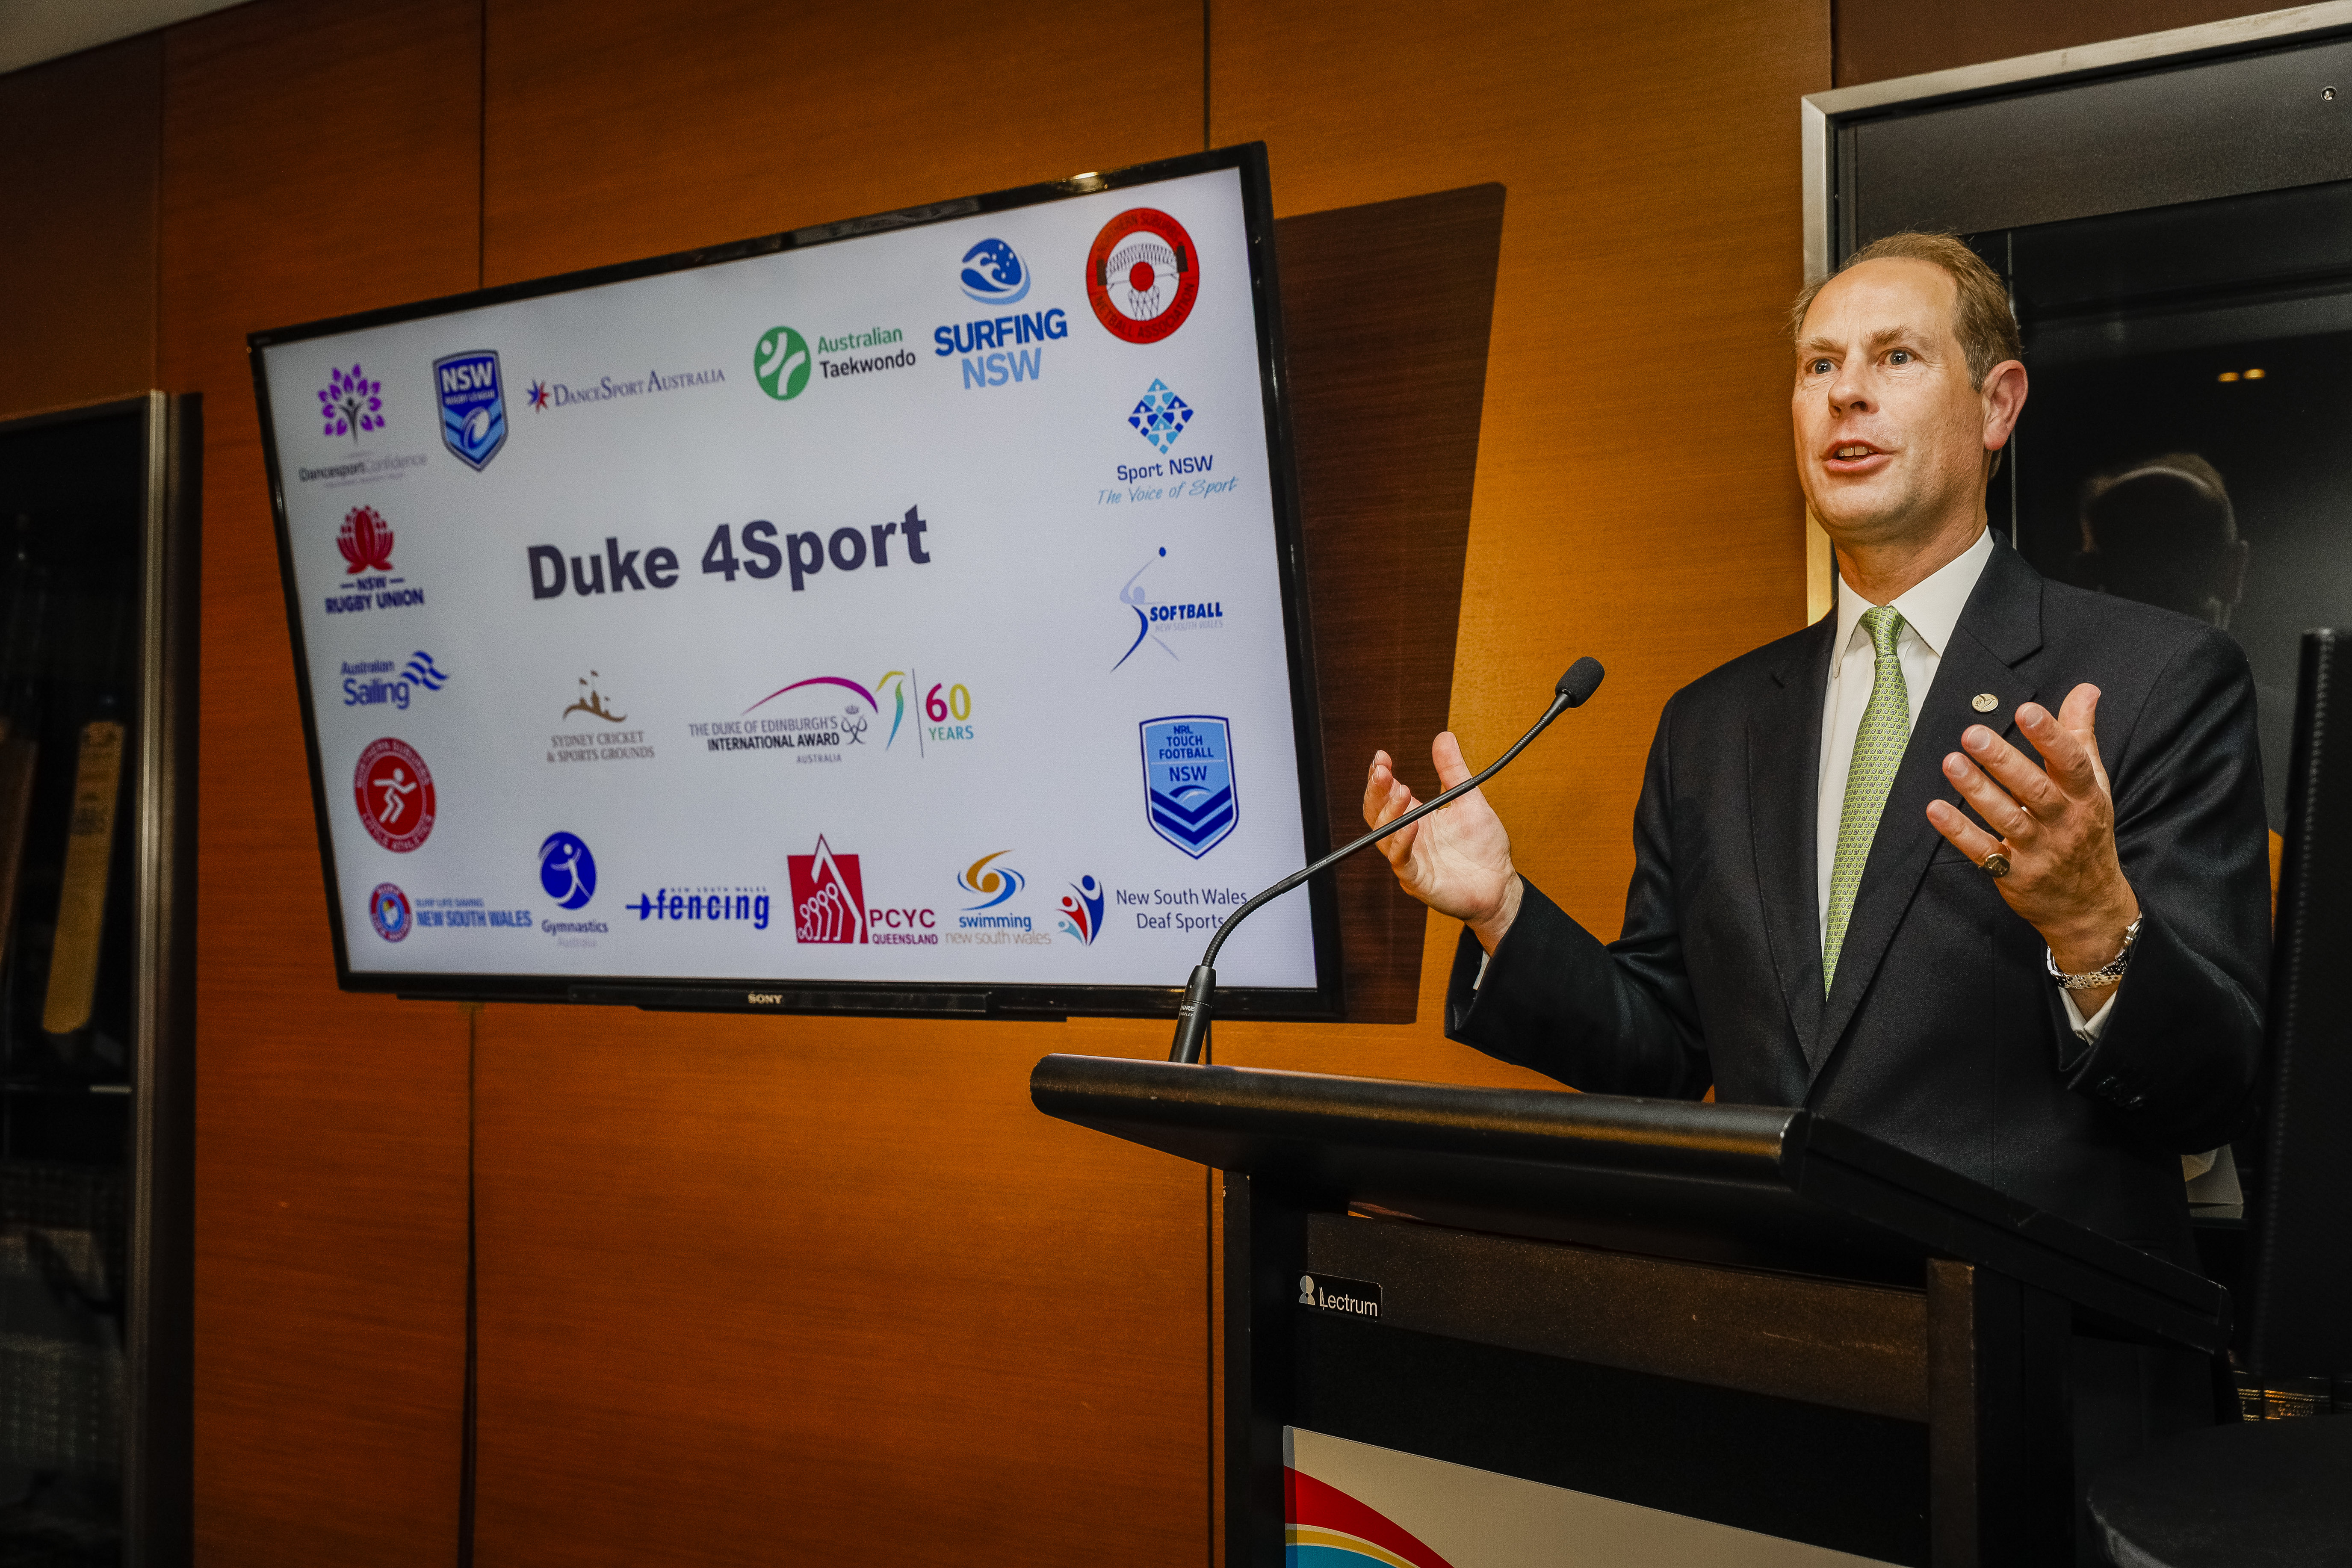 The Earl of Wessex at a Duke 4 Sport event in Sydney, Australia